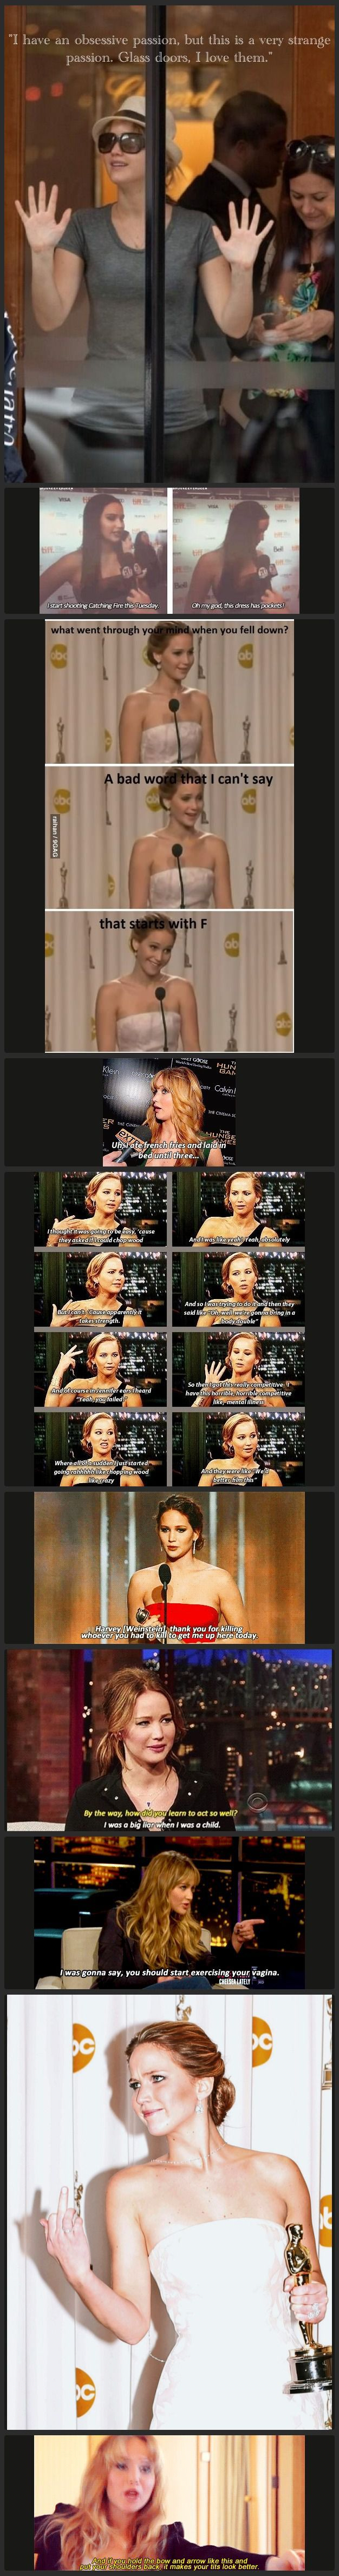 Oh, Jennifer Lawrence. I love her so much. My favorite actress